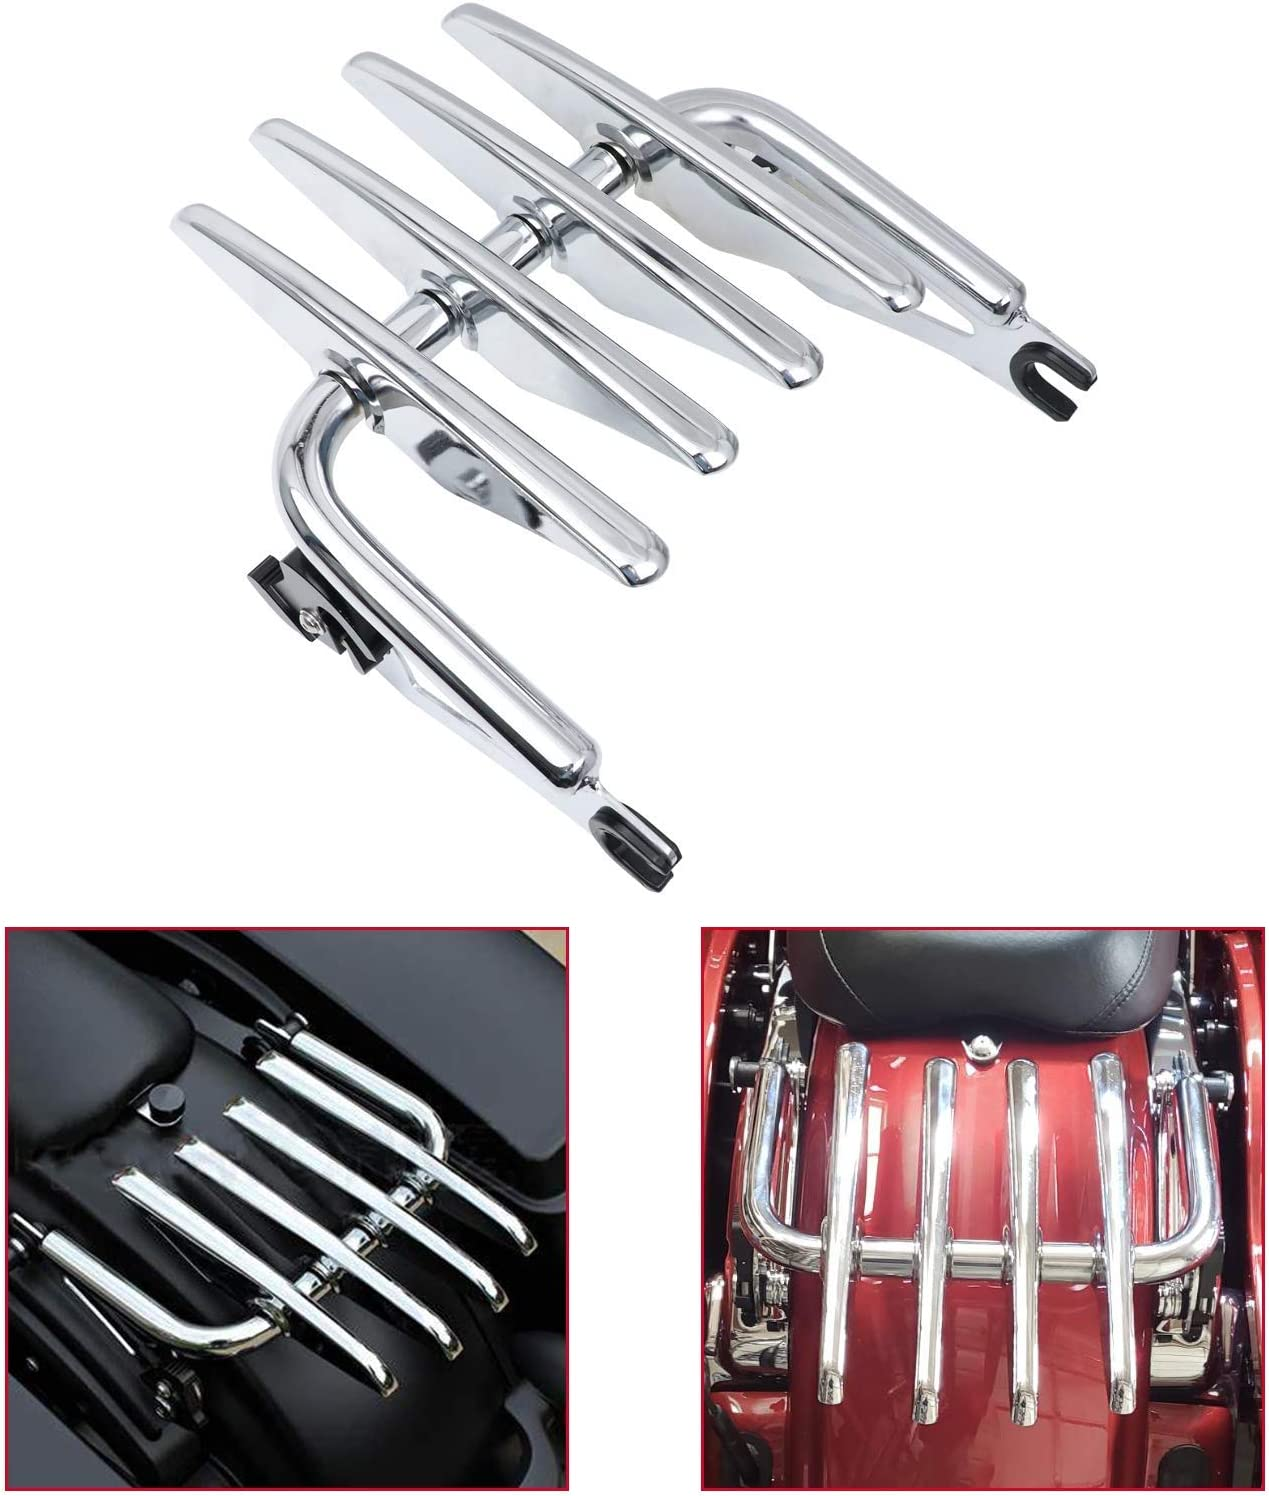 KOLEMO Max 54% OFF Chrome Detachable Stealth Luggage Fits National products S For Rack Touring